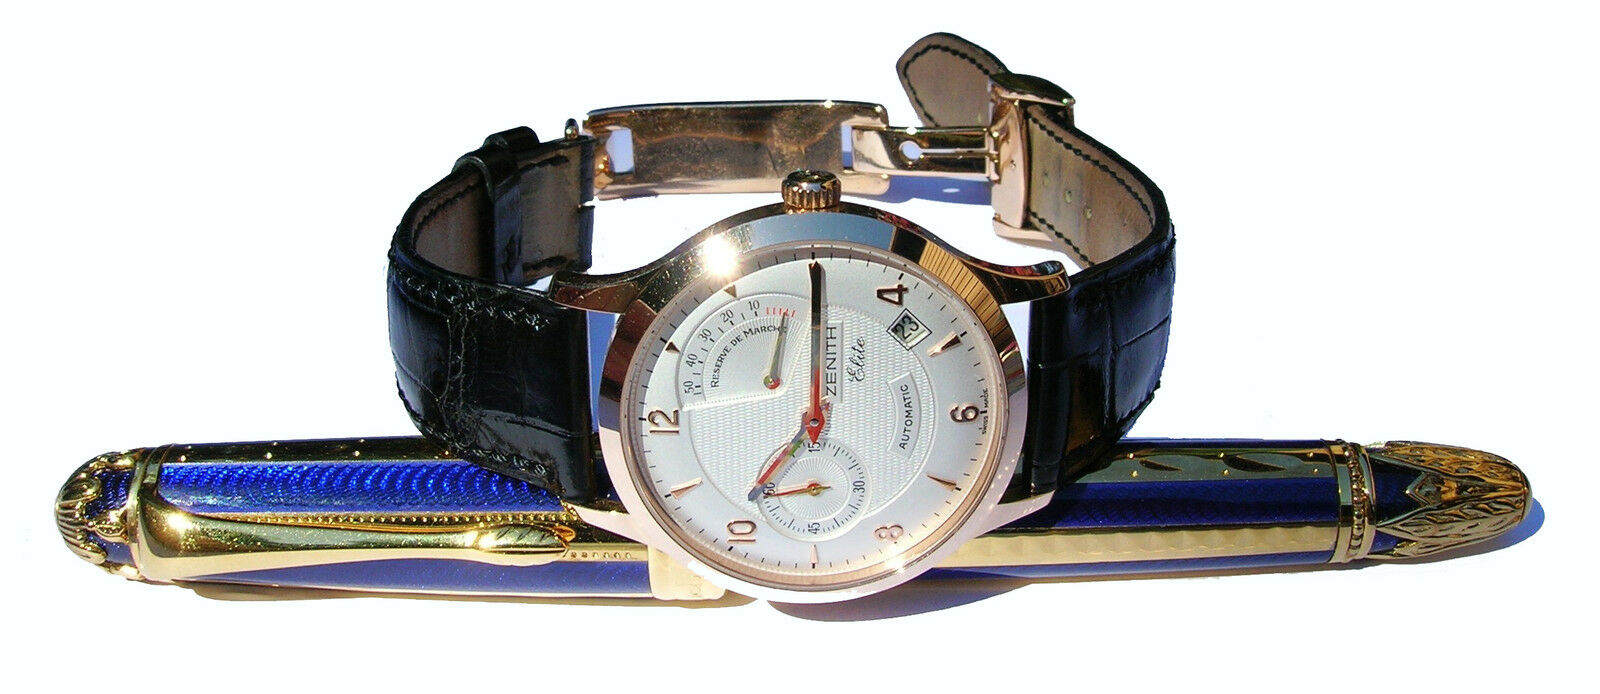 Watch and Pen Gallery